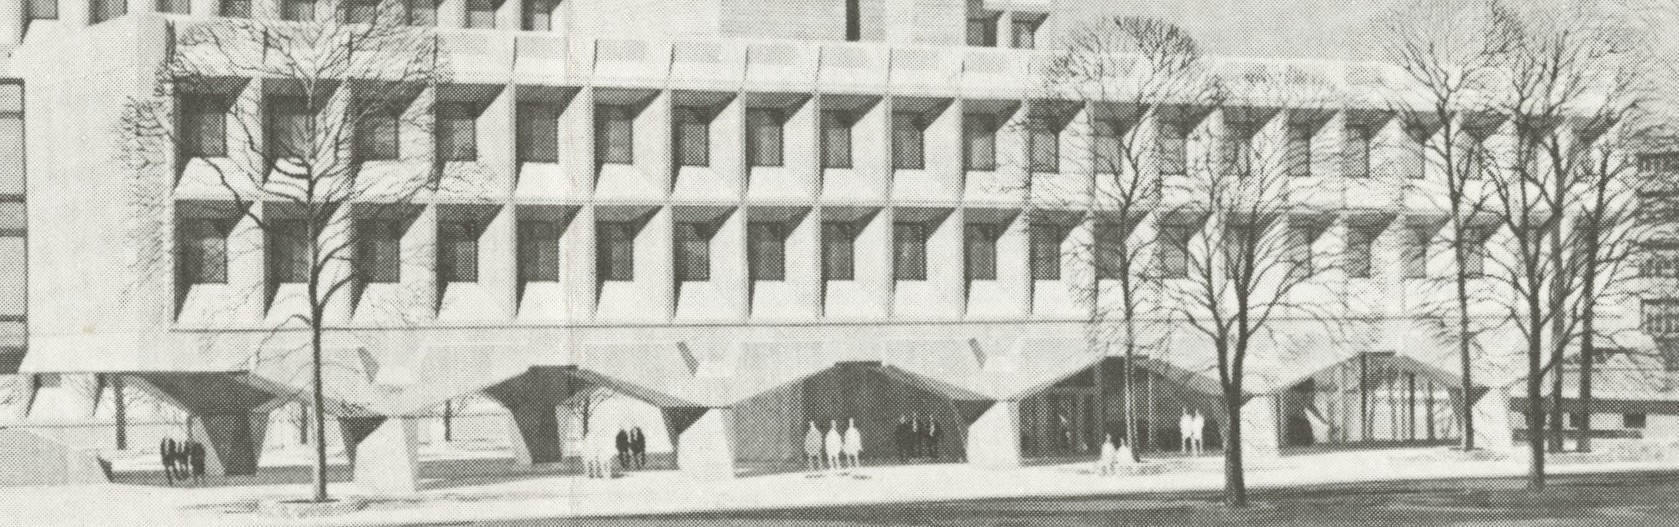 A History Of New York Universityu0027s Bronx Campus Told Through Its  Architecture